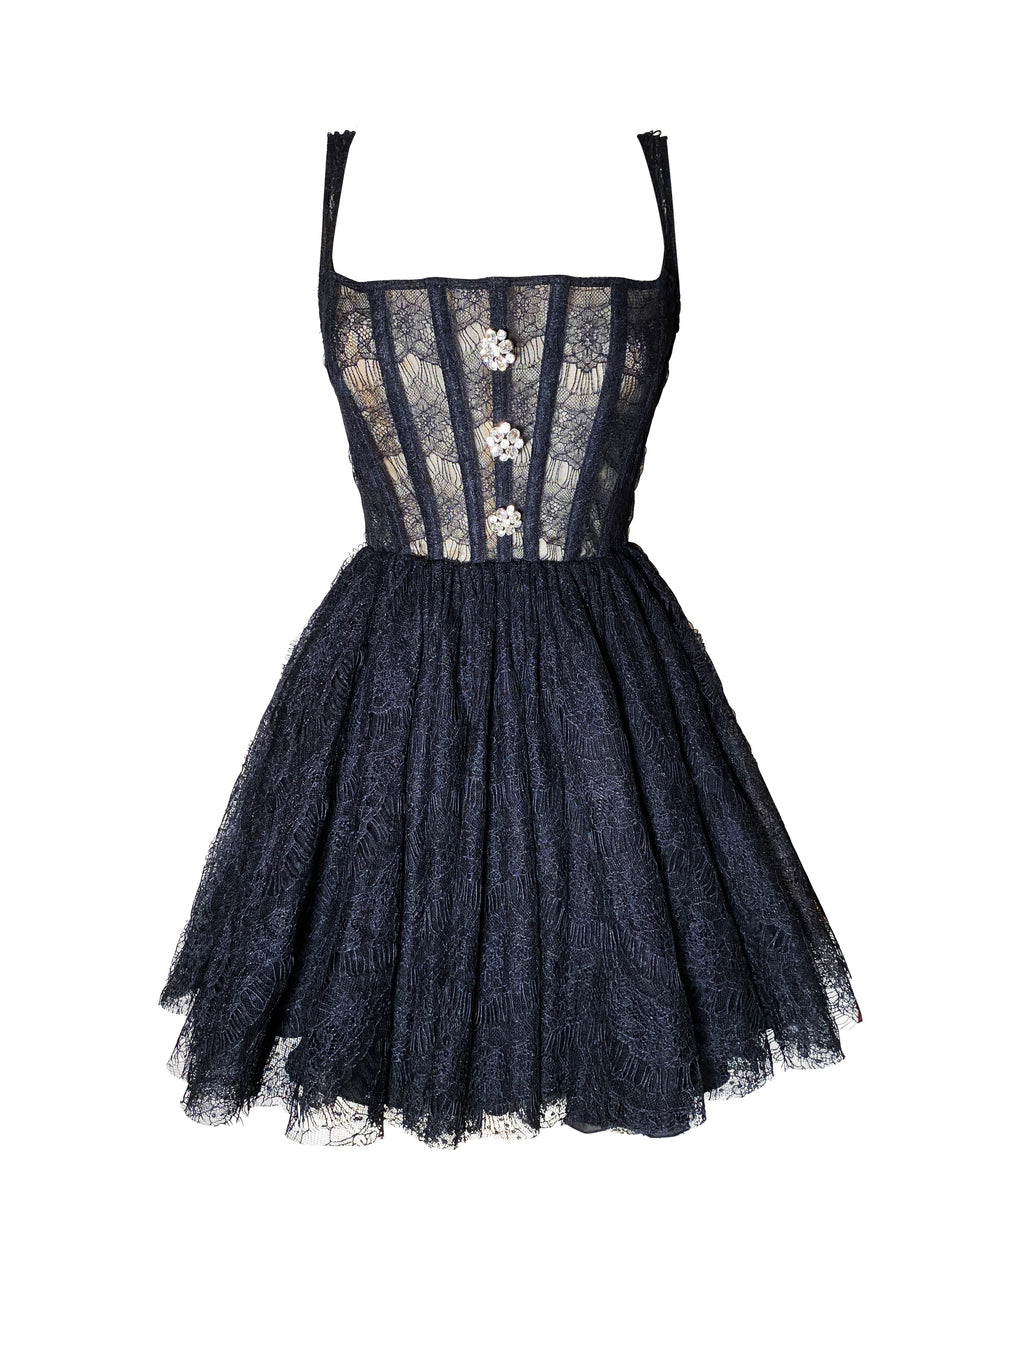 Annie Dress - Lace